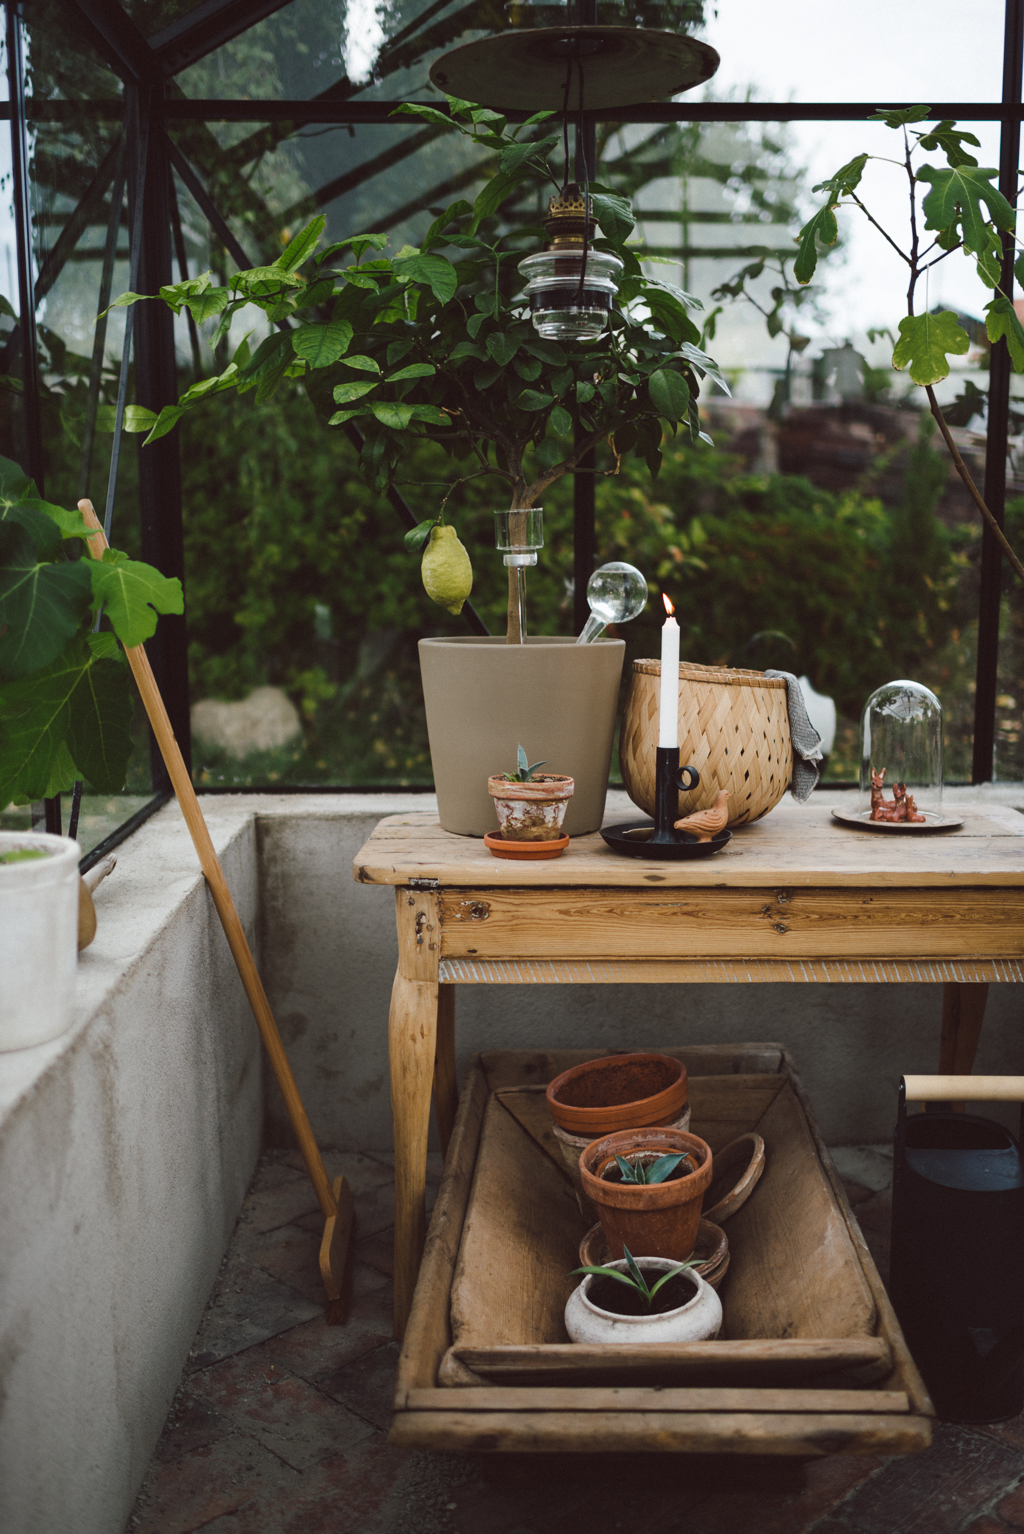 Greenery by Babes in Boyland